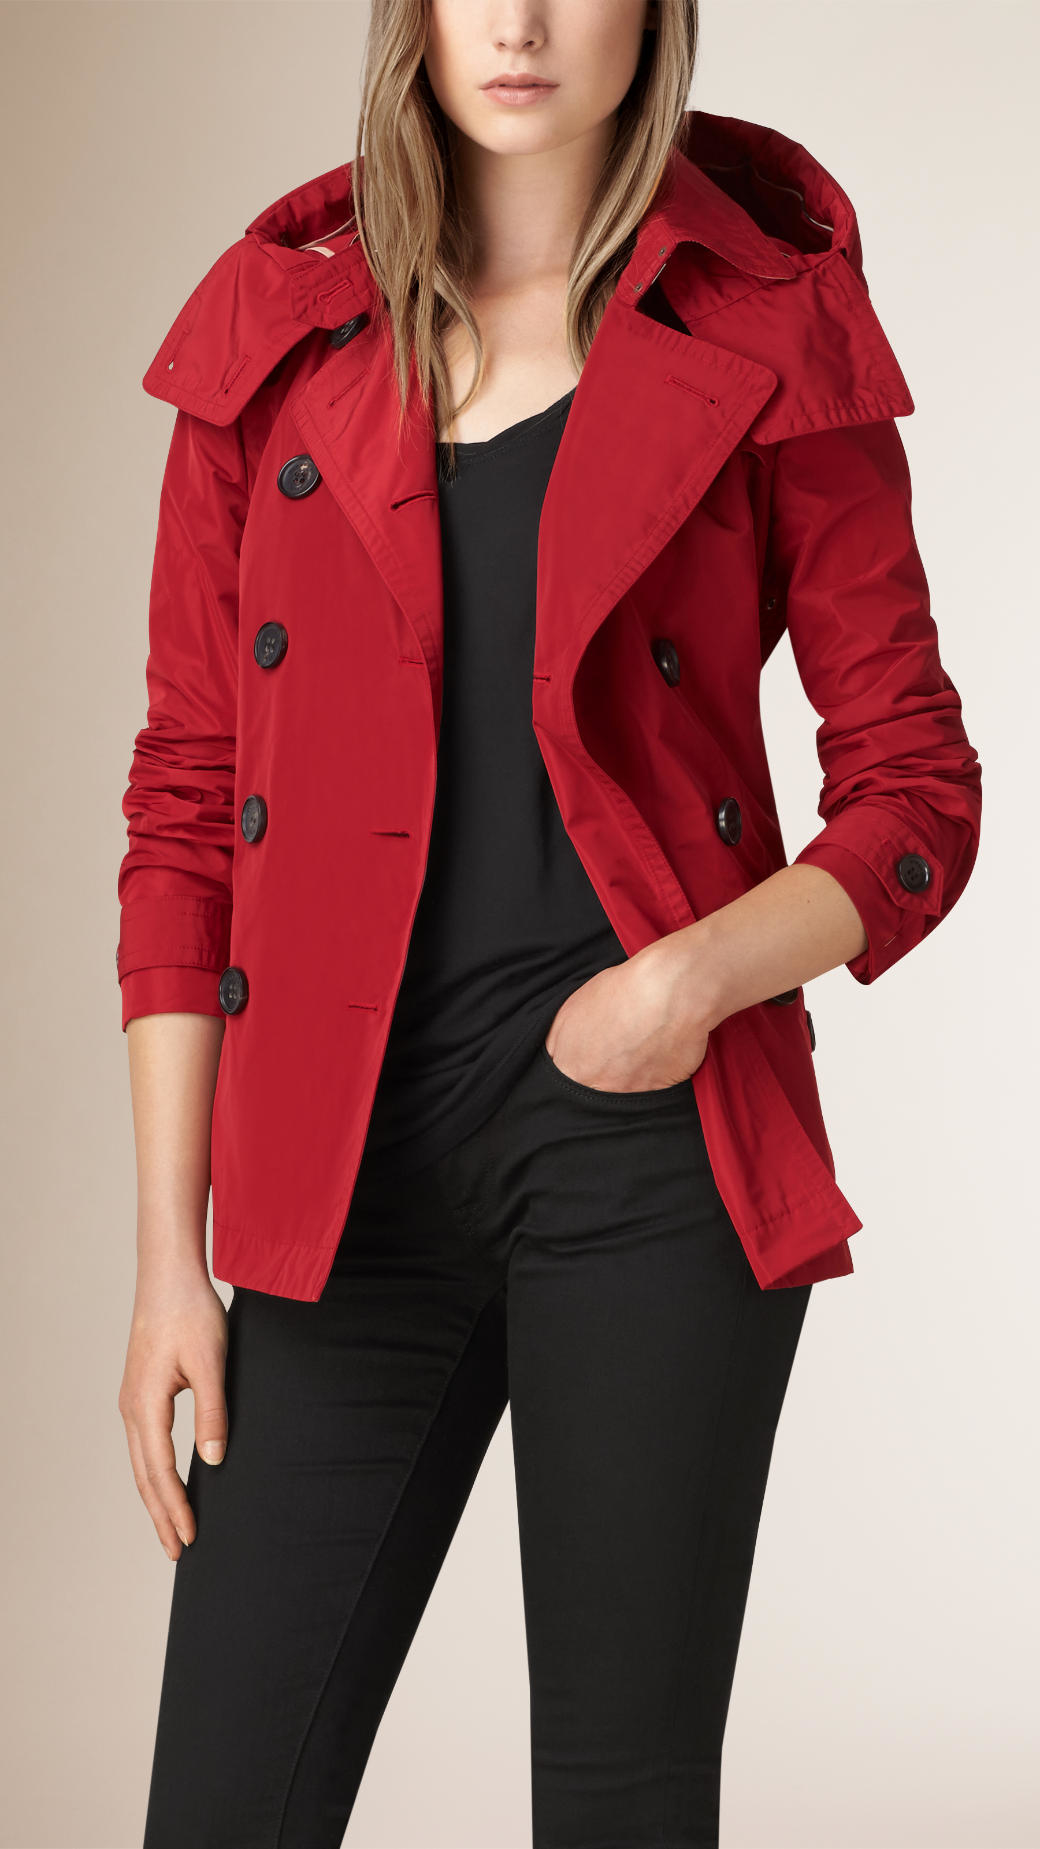 Burberry Short Showerproof Trench Coat in Red | Lyst